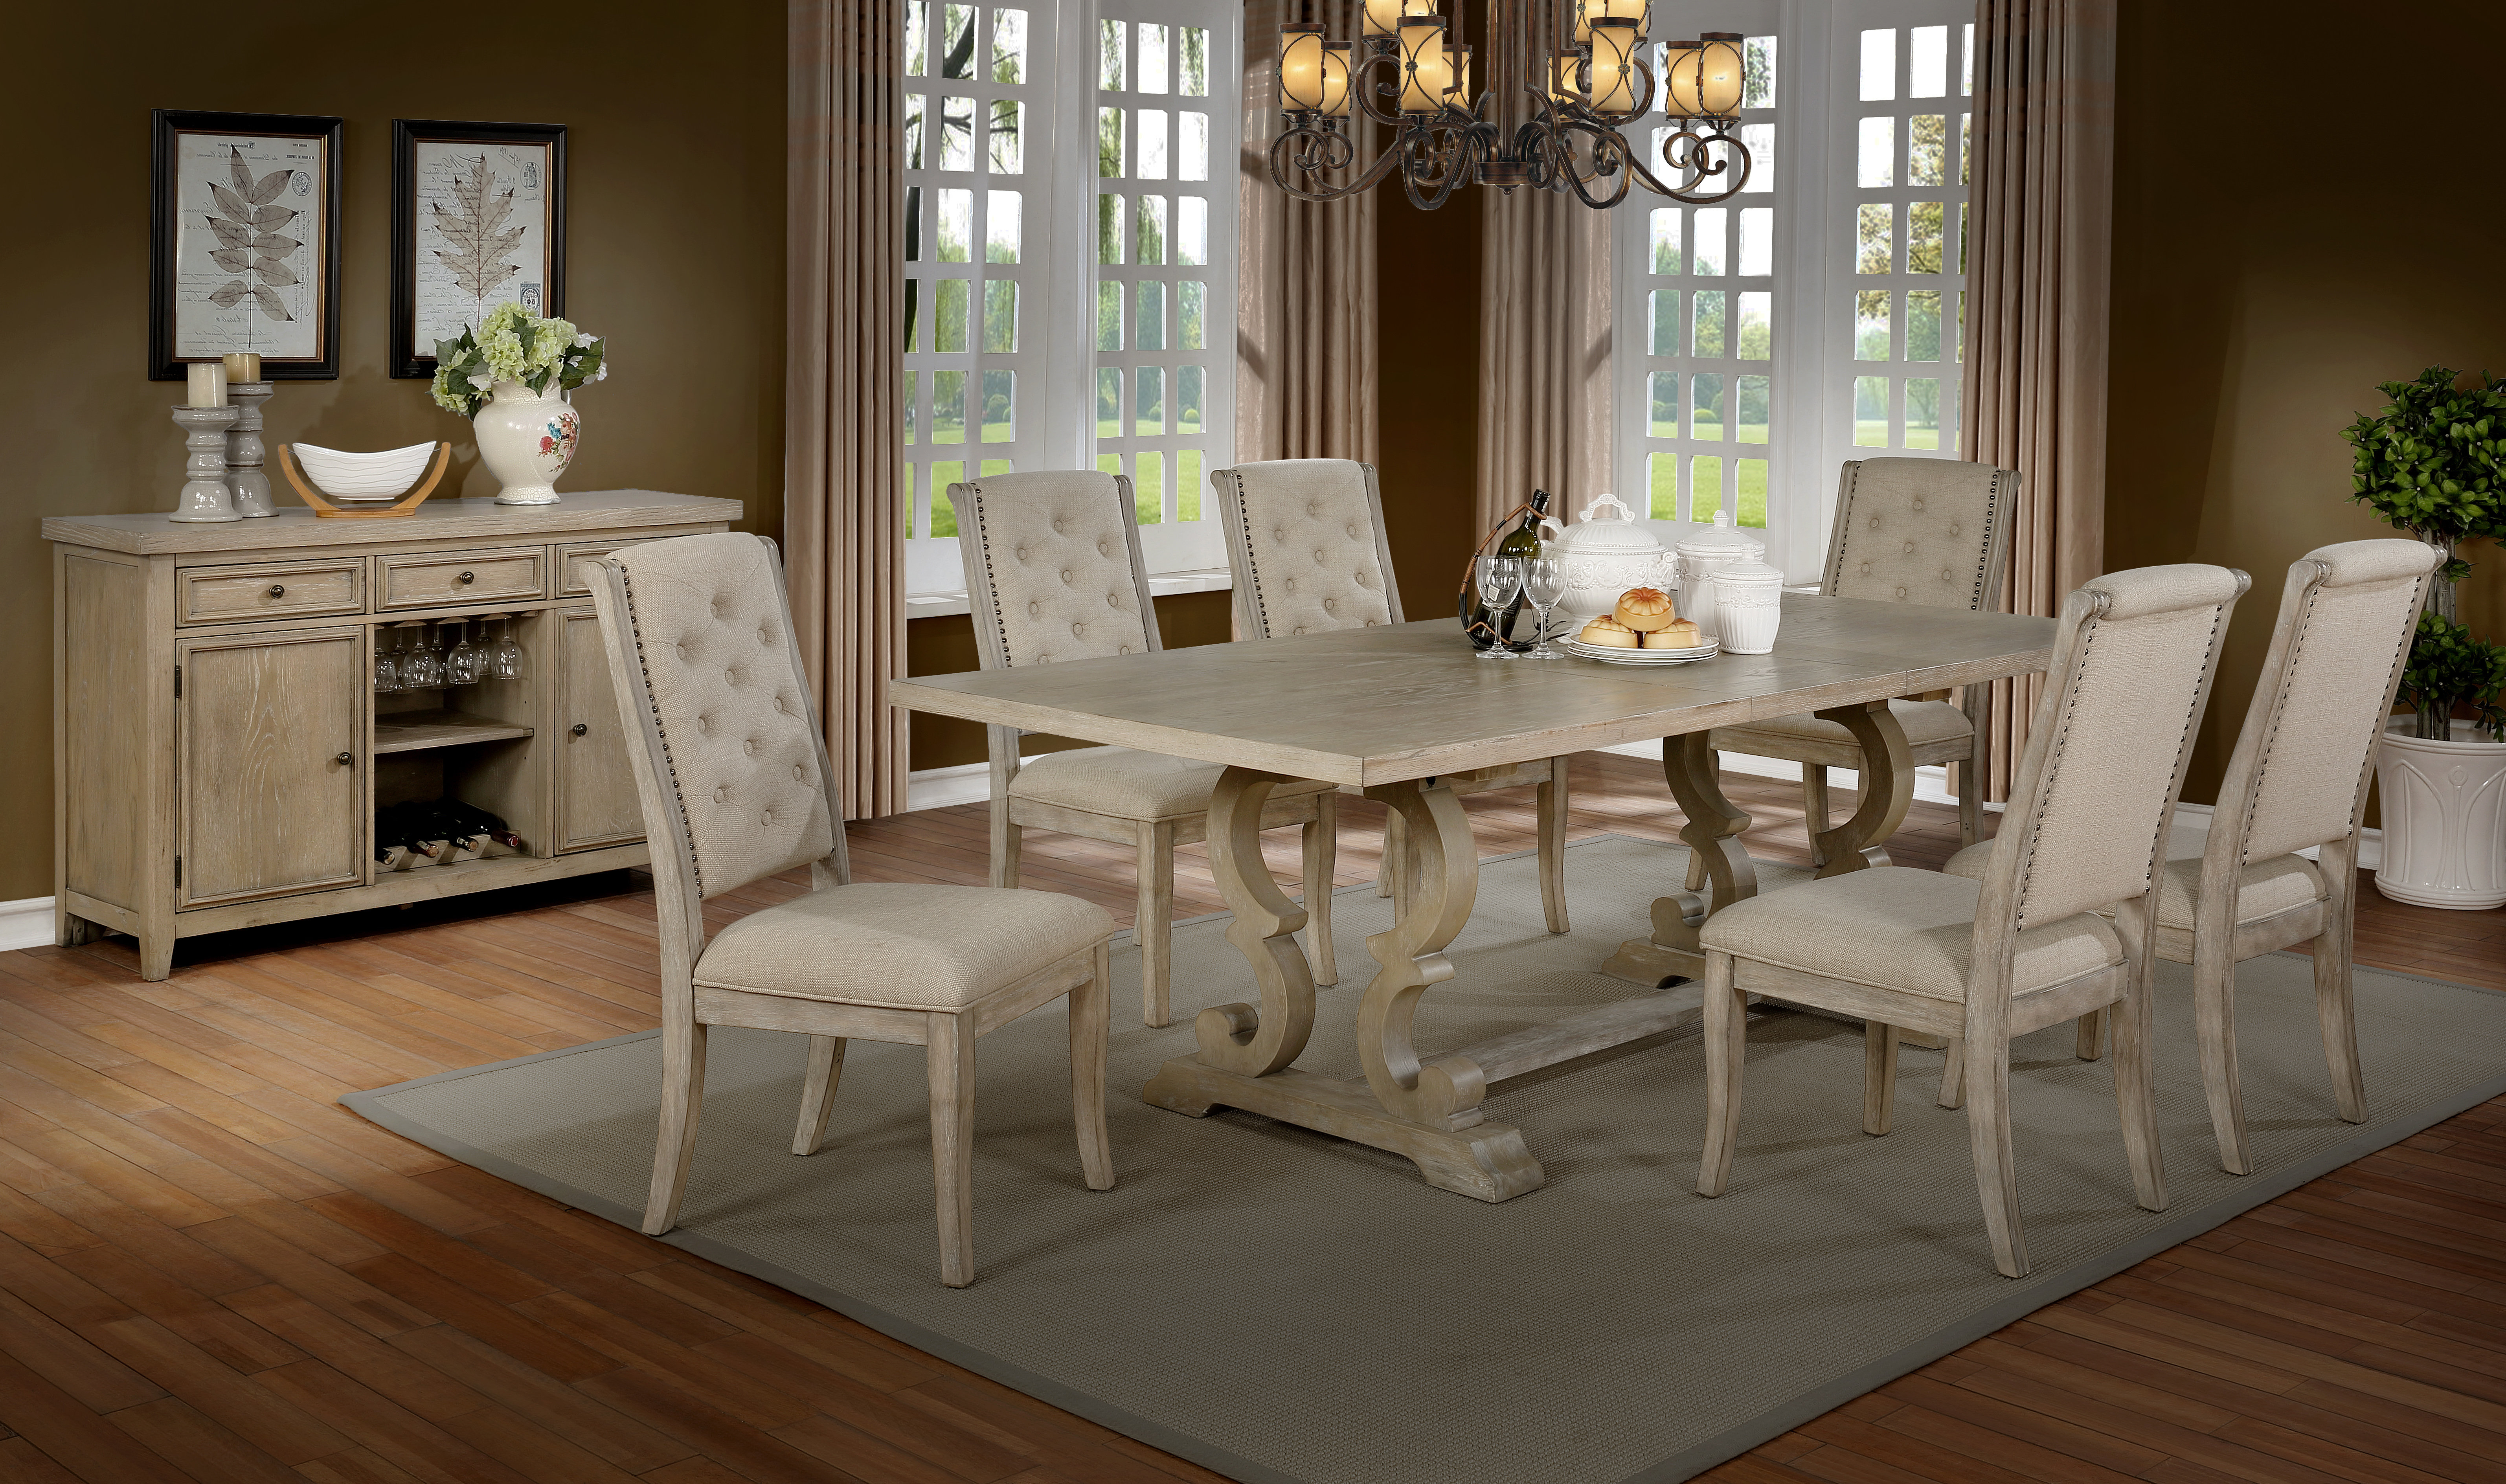 Queener 5 Piece Dining Sets For Current Zechariah 7 Piece Dining Set (View 14 of 20)